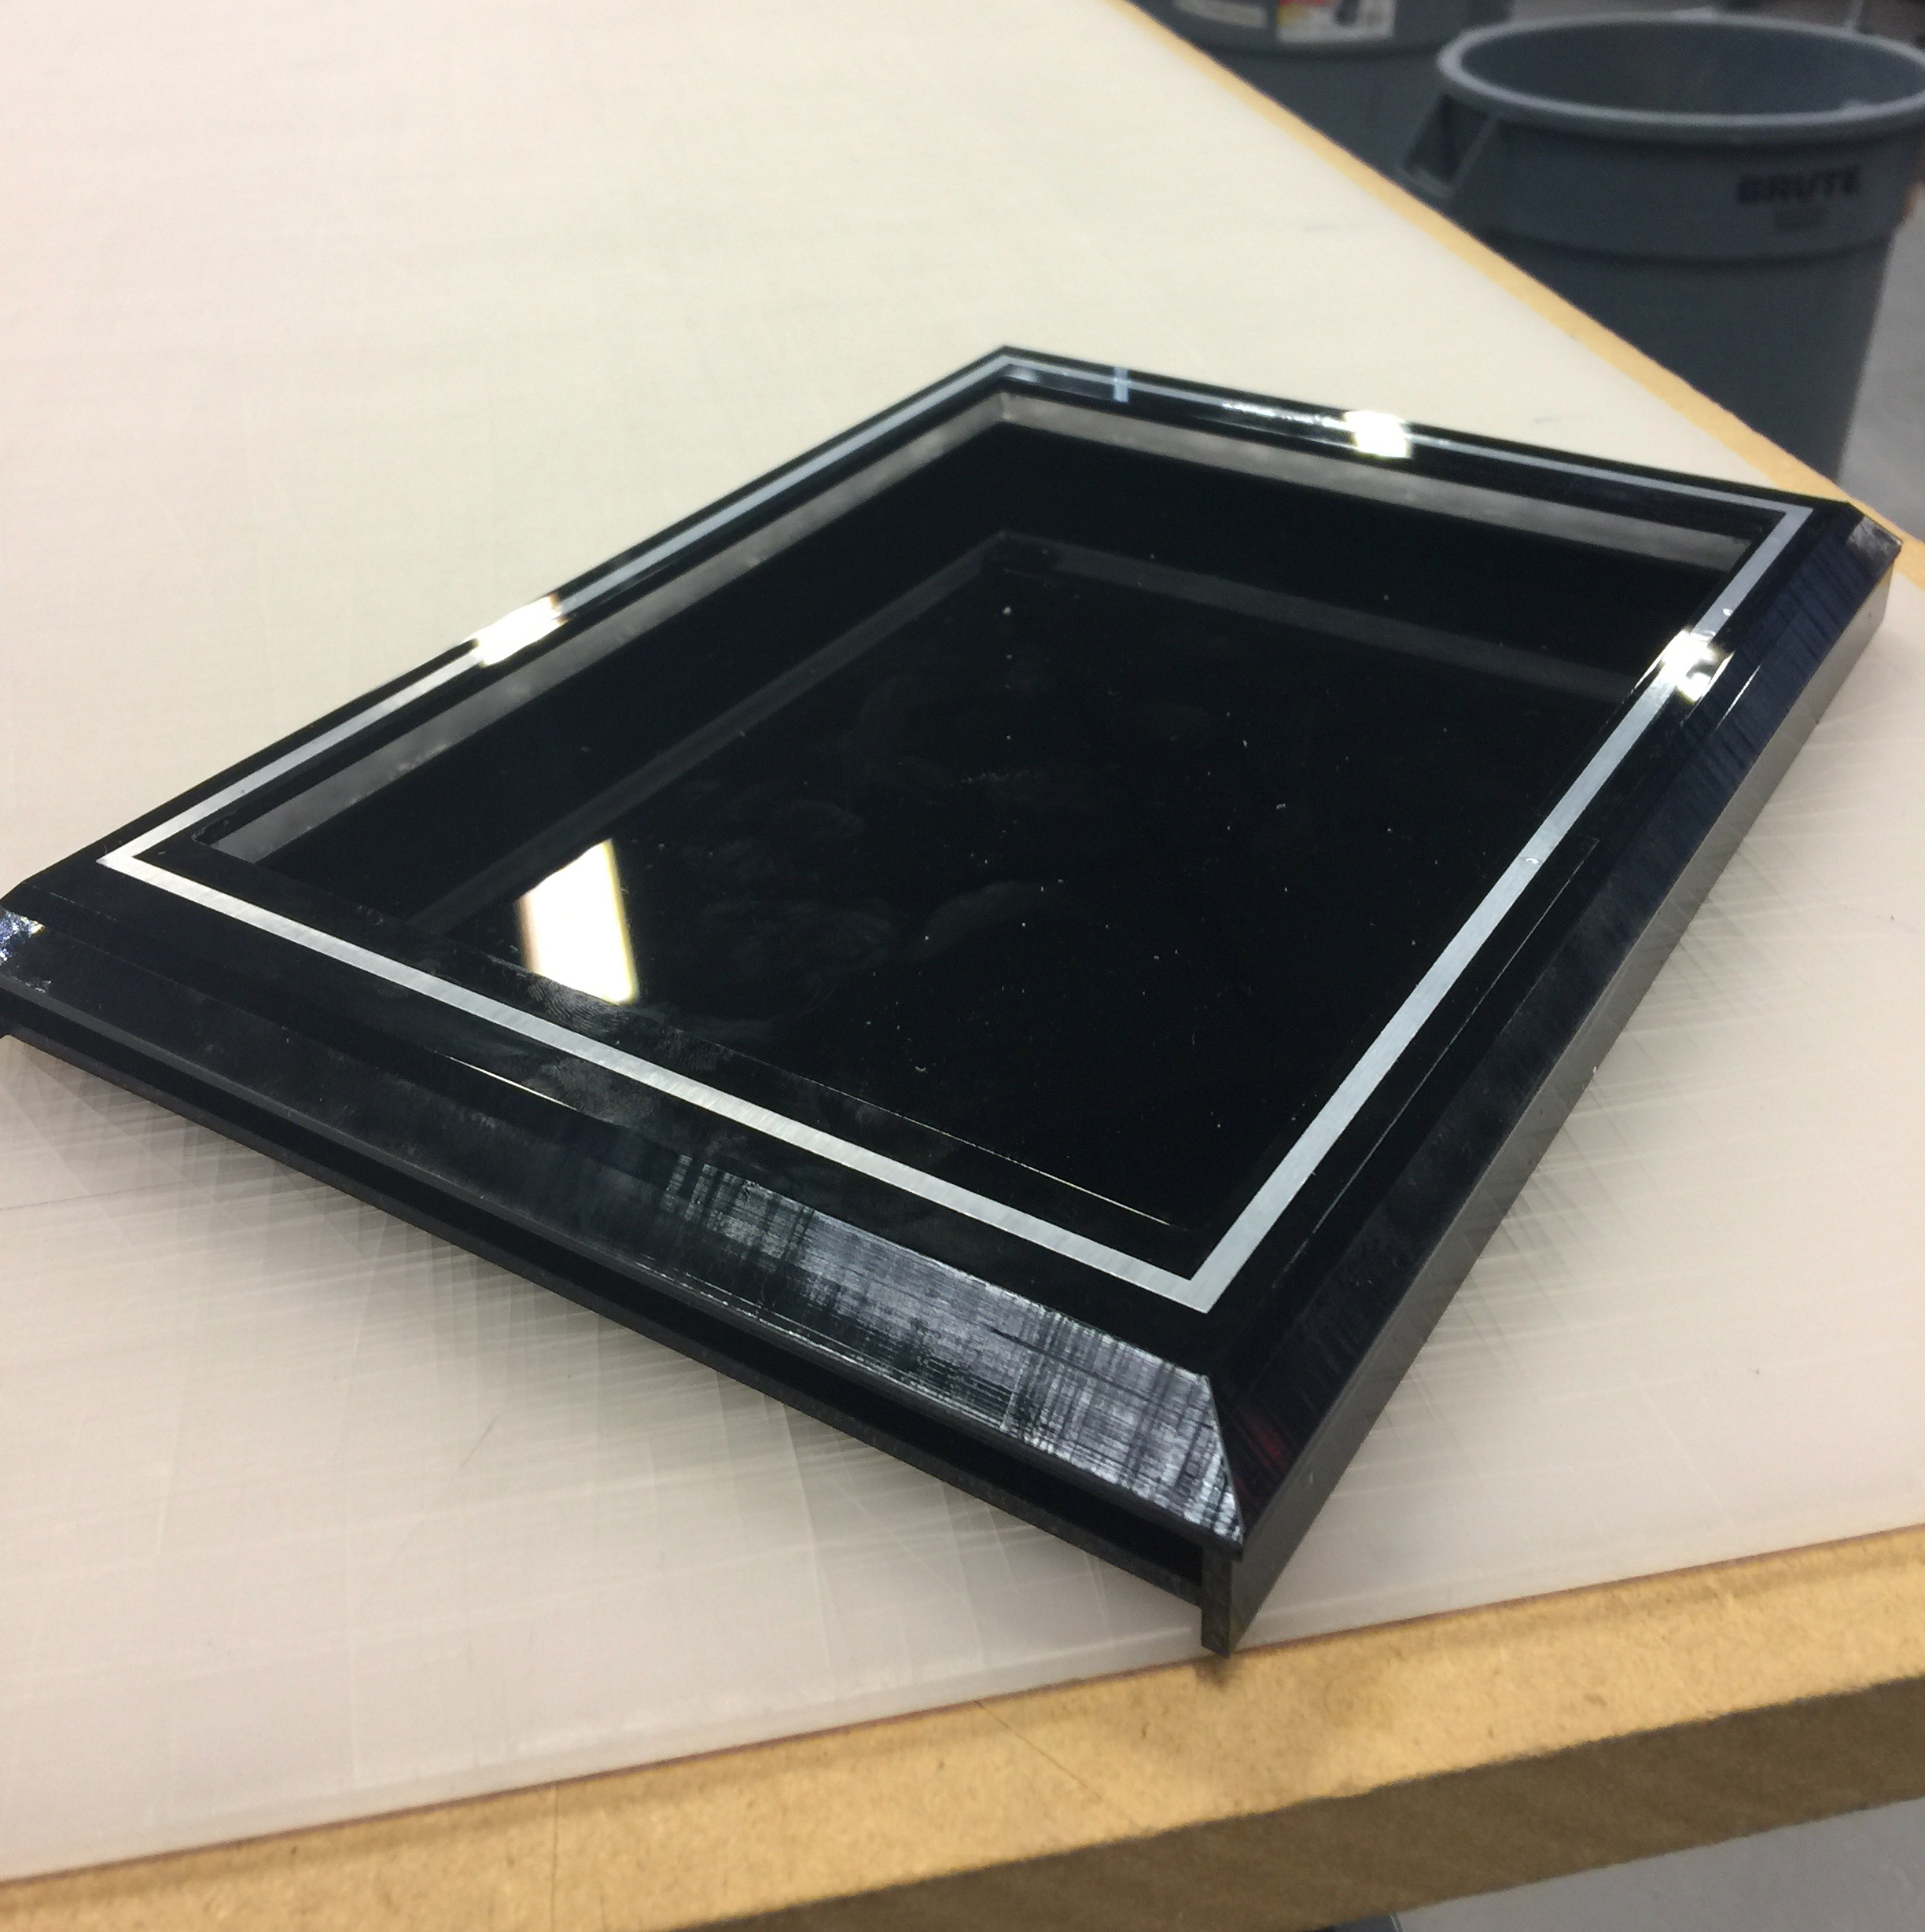 Acrylic Fabrication for iPad Frame